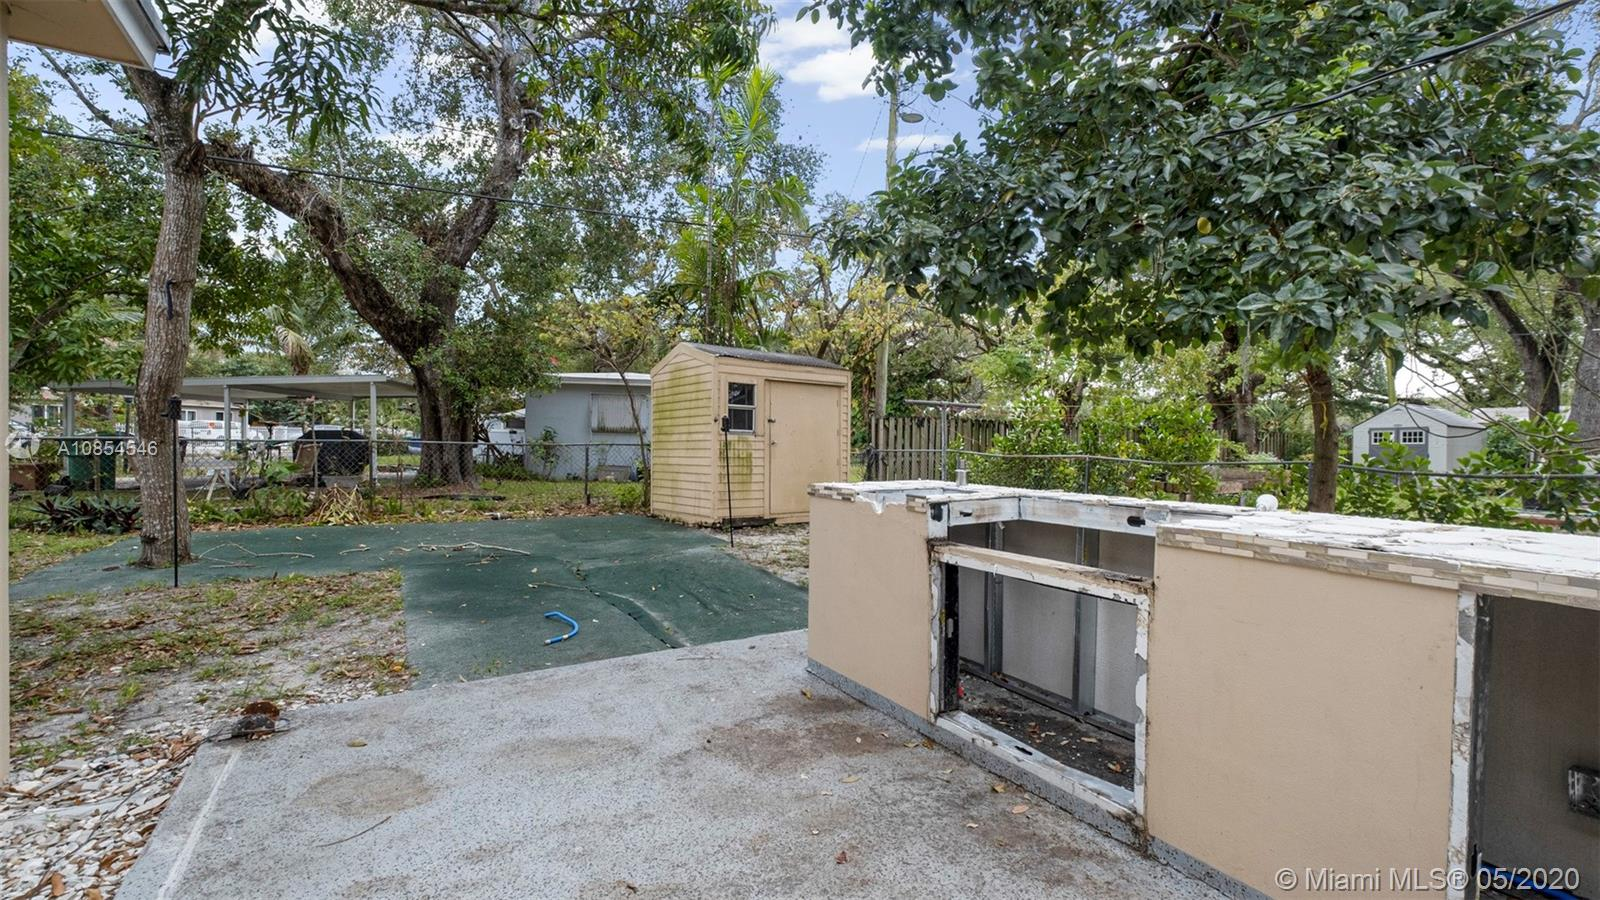 2470 NW 168th St, Miami Gardens, Florida 33056, 3 Bedrooms Bedrooms, ,1 BathroomBathrooms,Residential,For Sale,2470 NW 168th St,A10854546